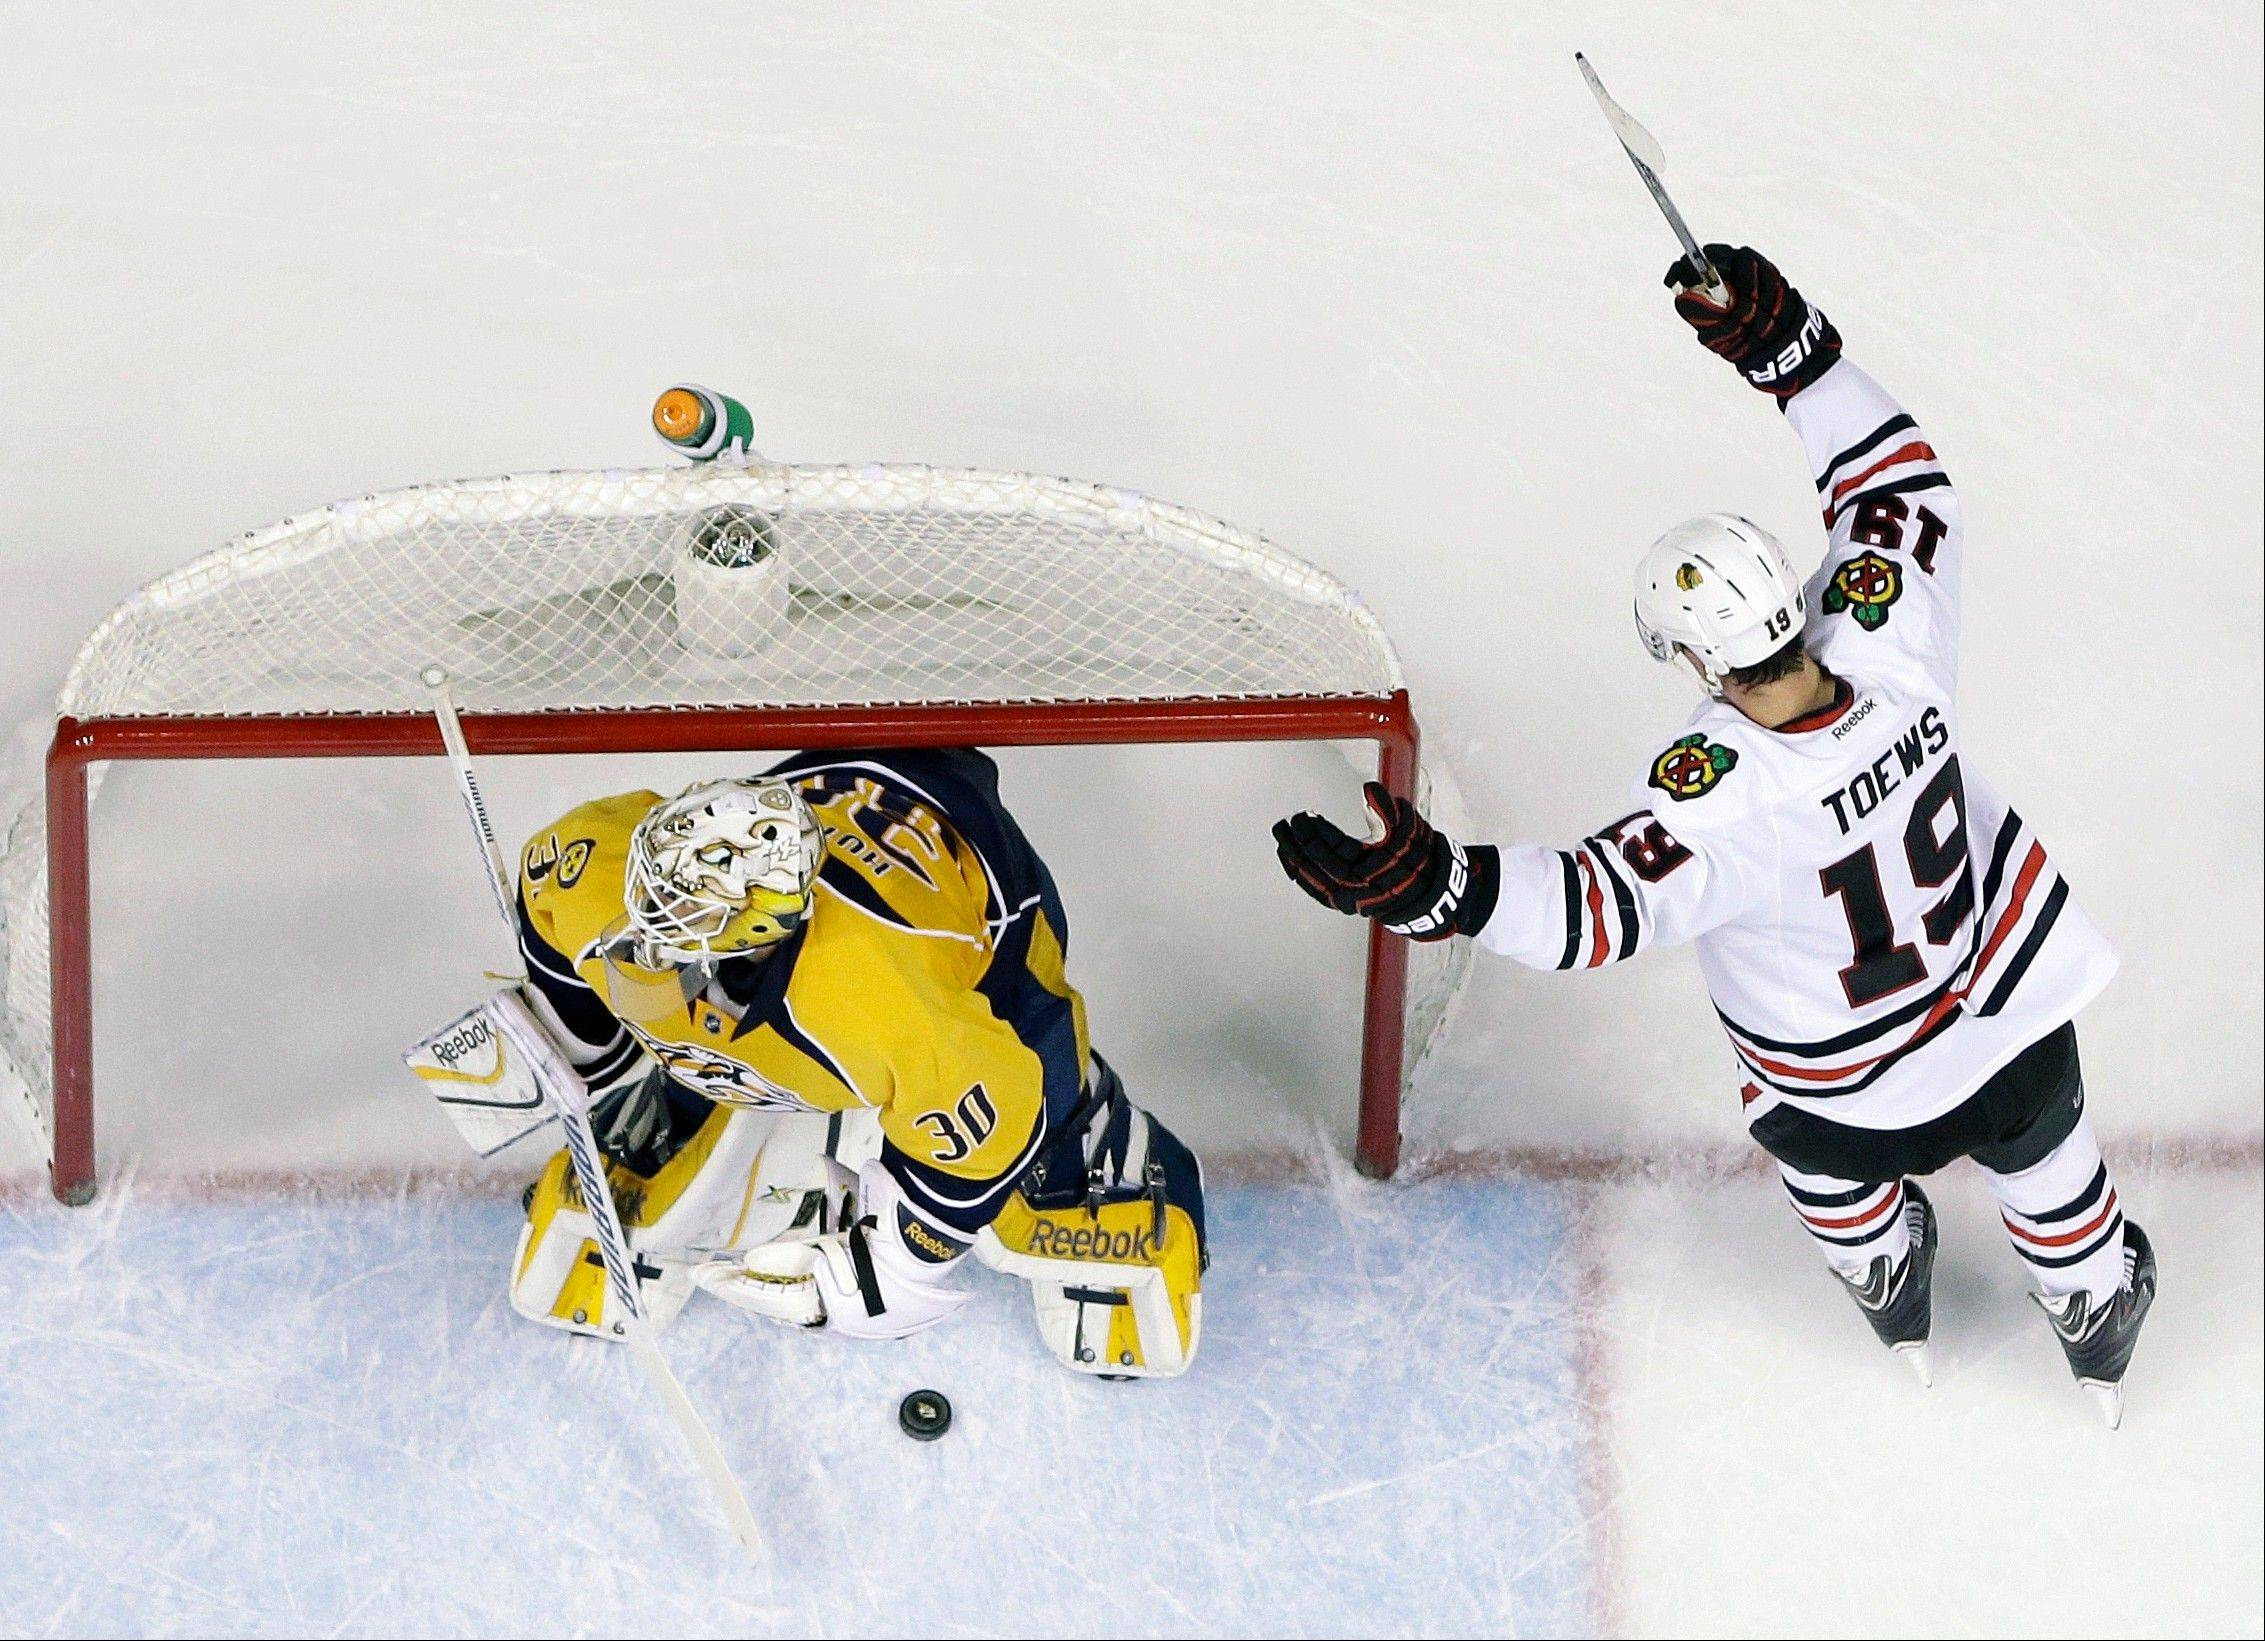 Jonathan Toews celebrates a goal by Blackhawks teammate Patrick Kane against Predators goalie Carter Hutton in the first period Tuesday night.